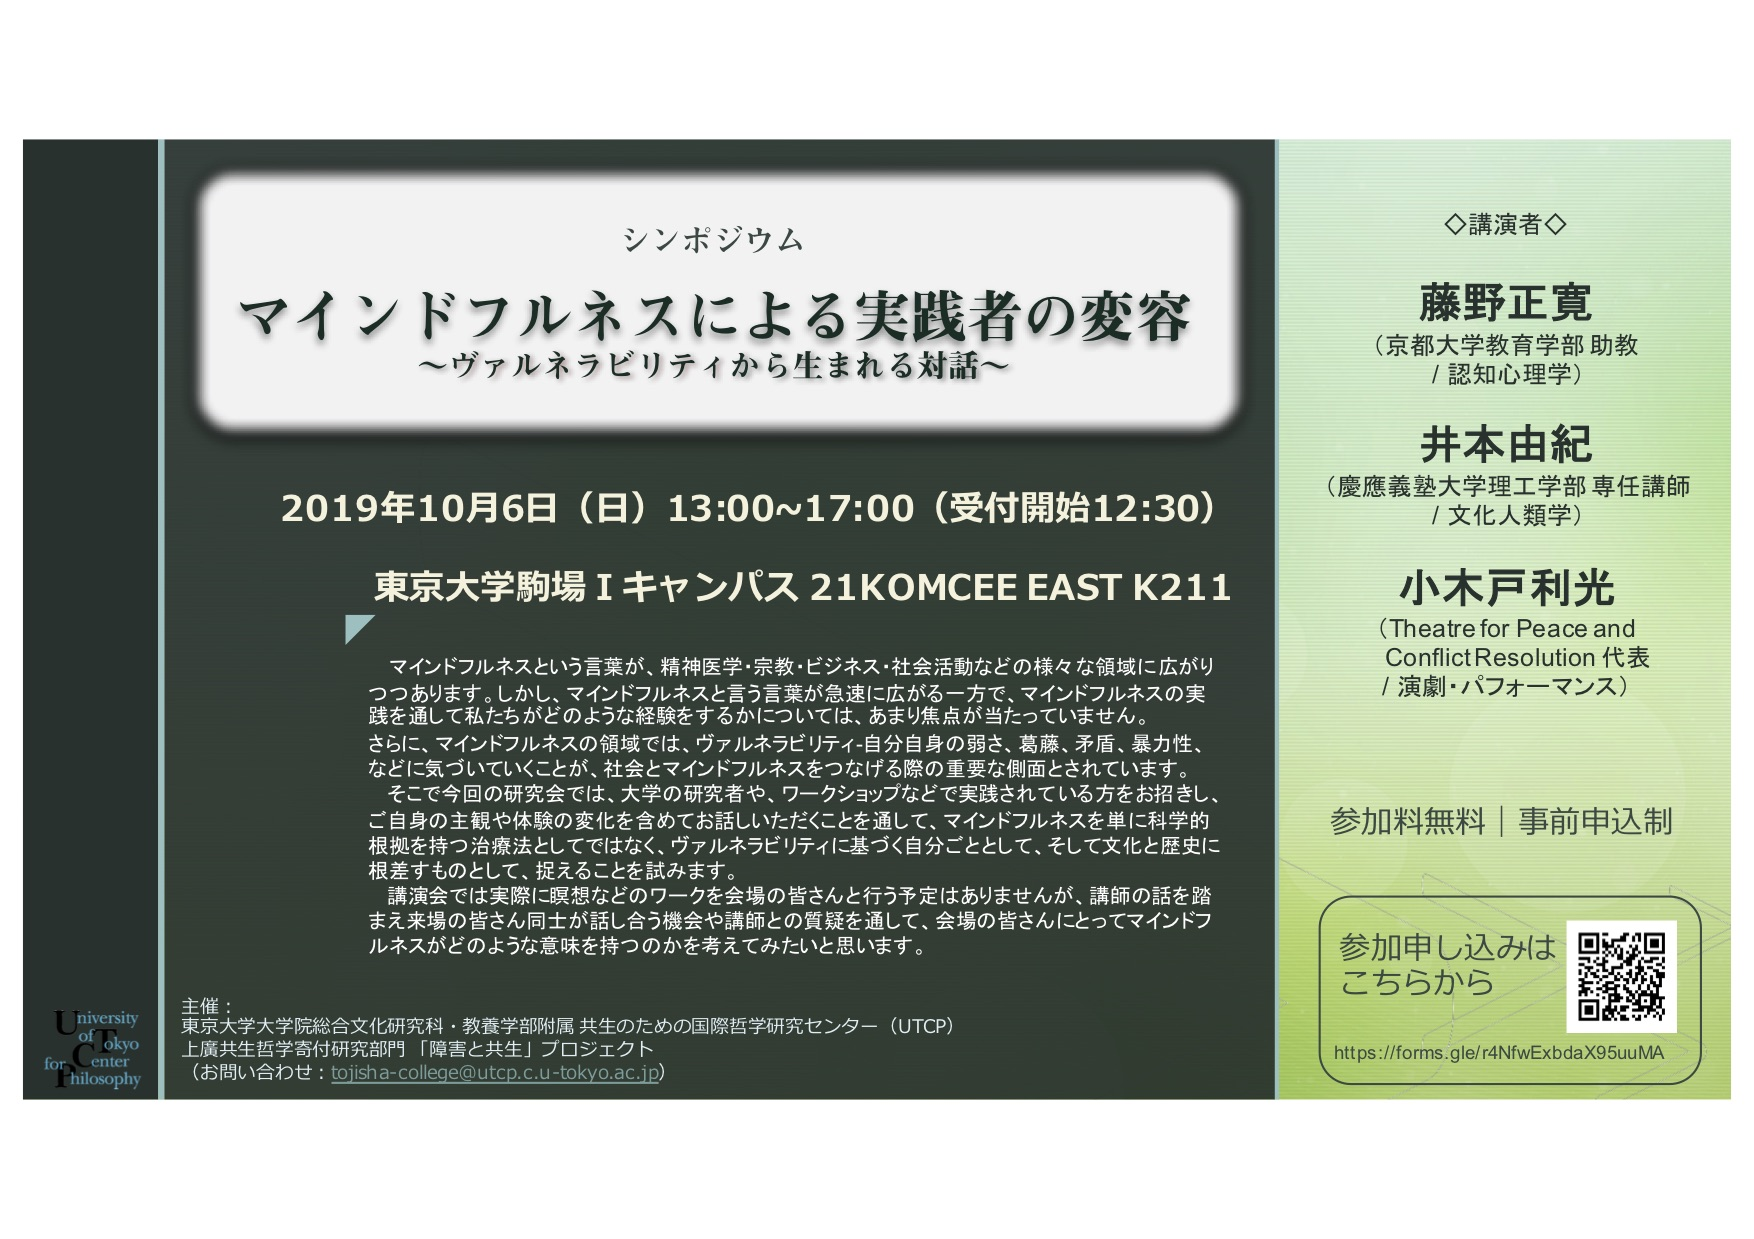 Symposium at University of Tokyo Center for Philosophy / 東京大学 共生のための国際哲学研究センター